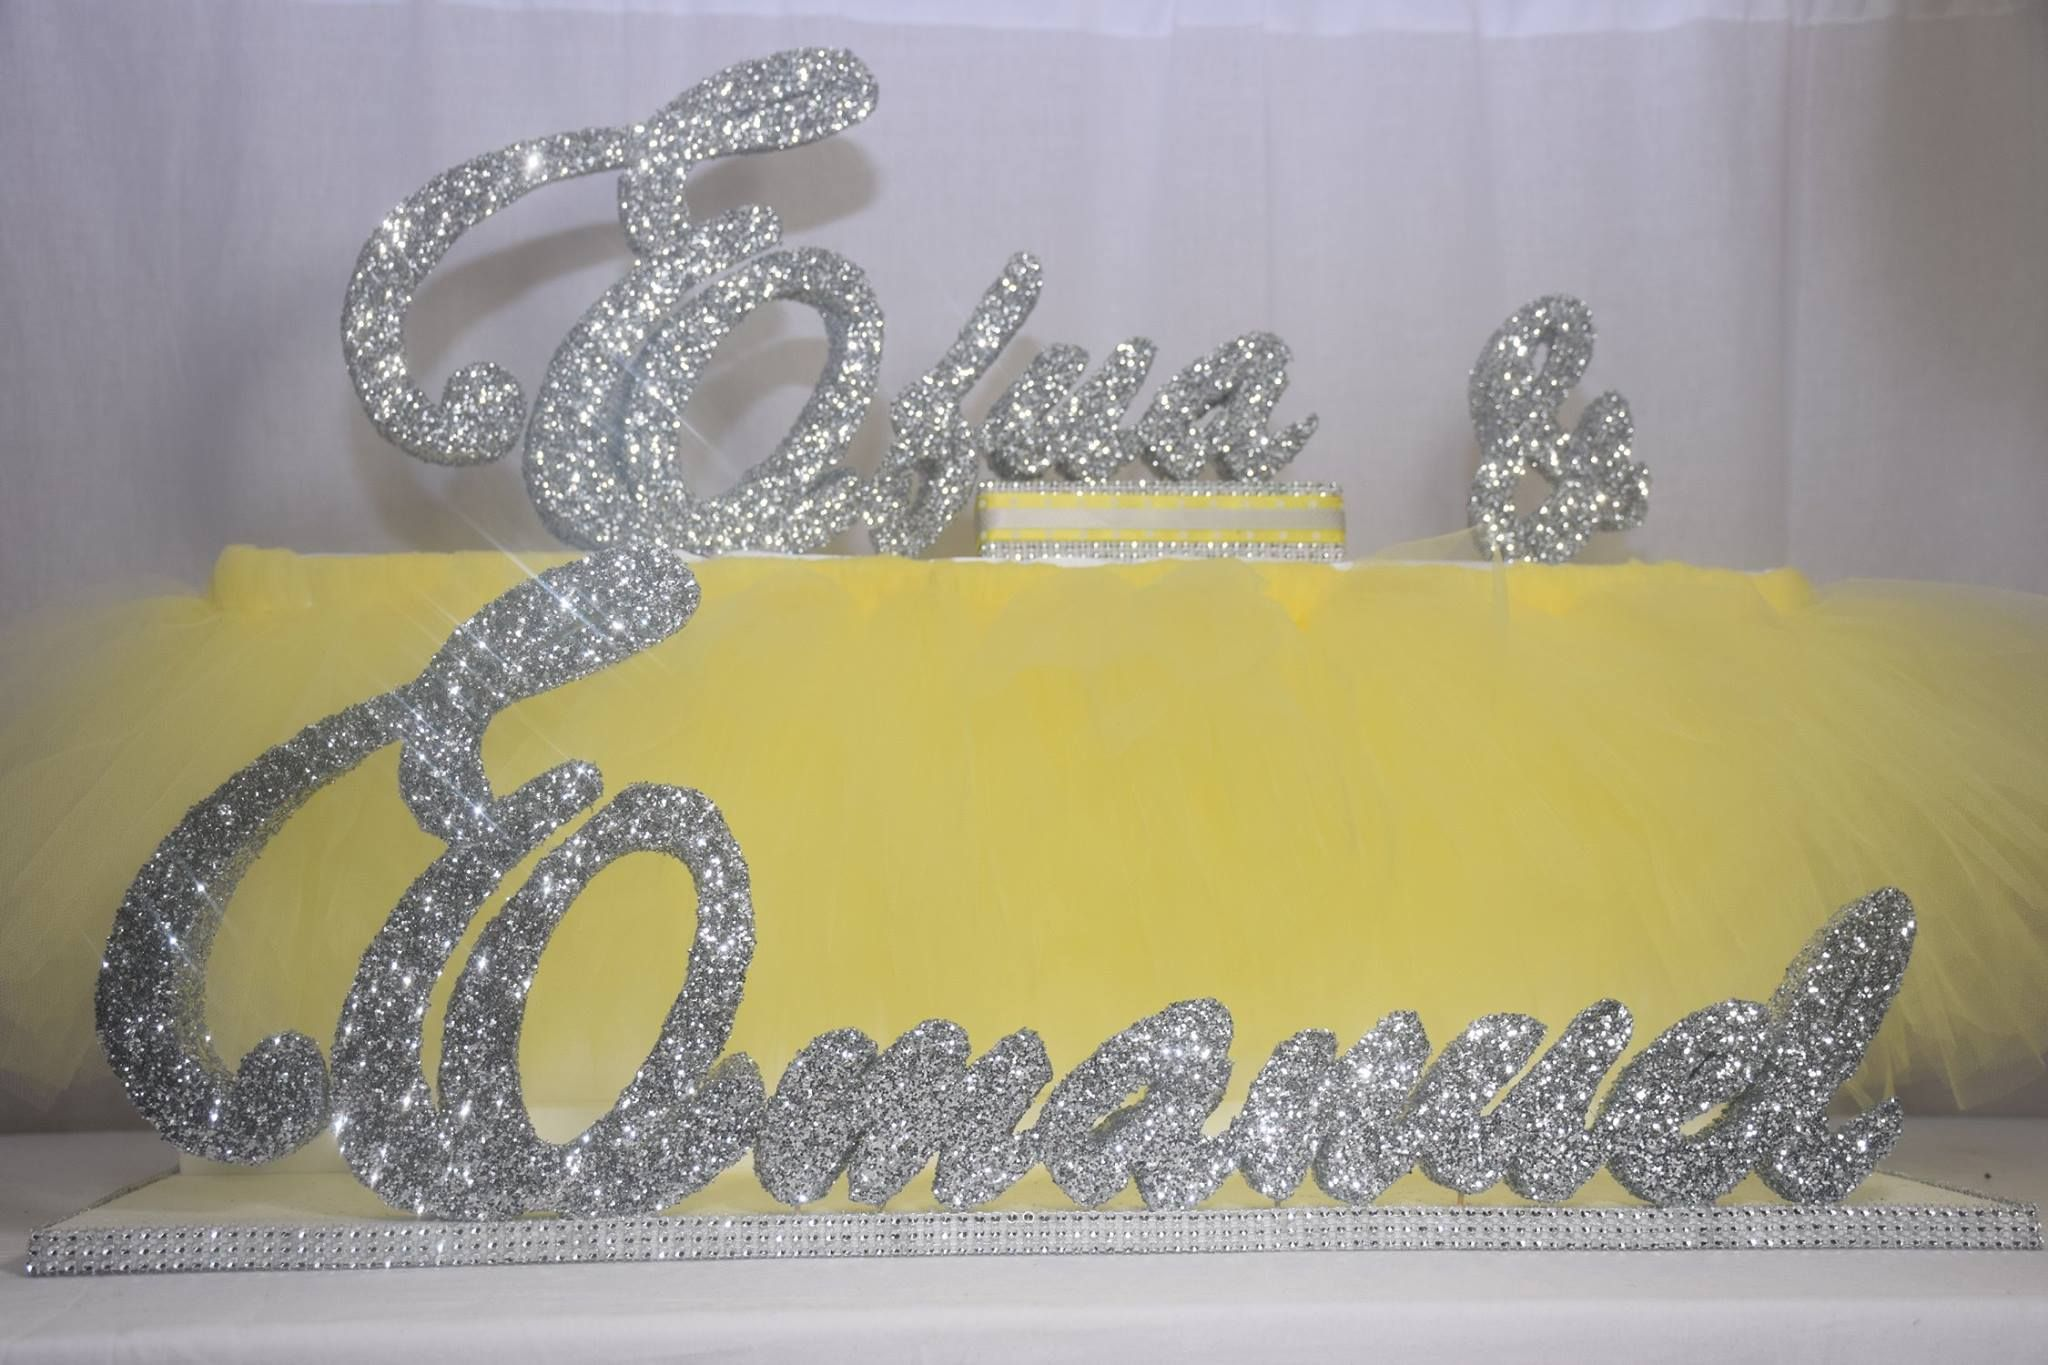 Styrofoam centerpiece for baby shower to match the tutu theme